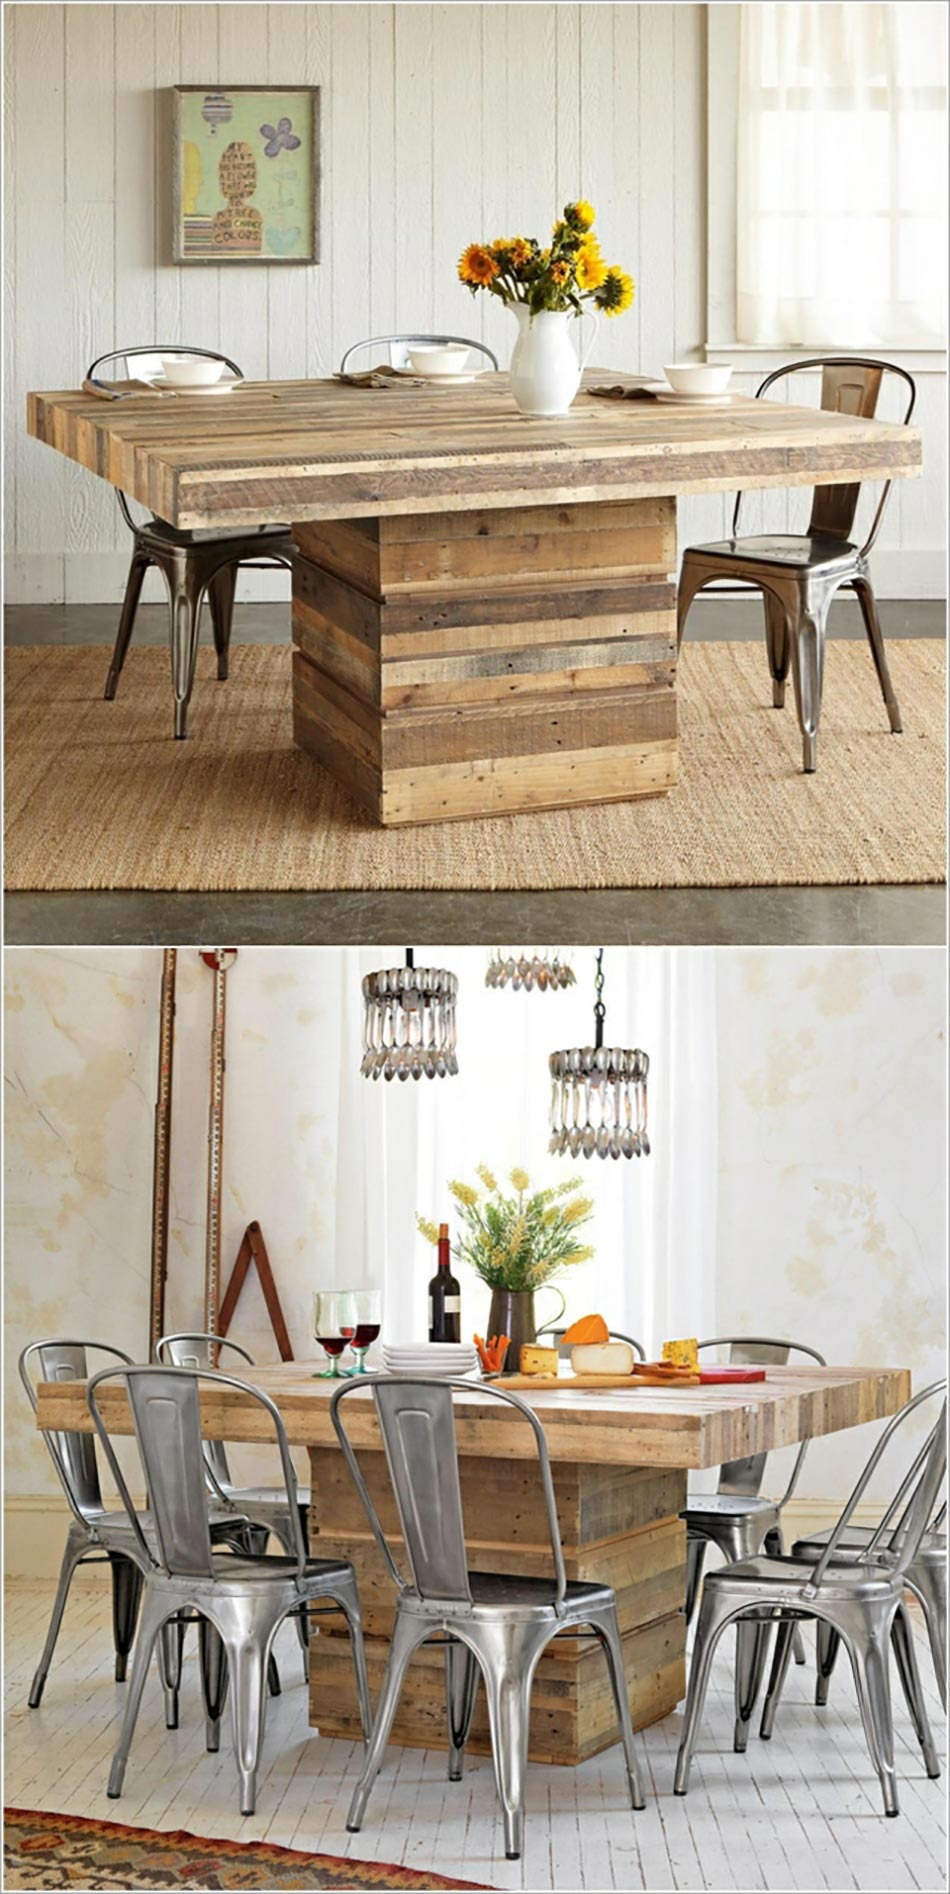 Diy Table A Manger Diy Table A Manger Do It Yourself Bricolage Bouteille De Lampe